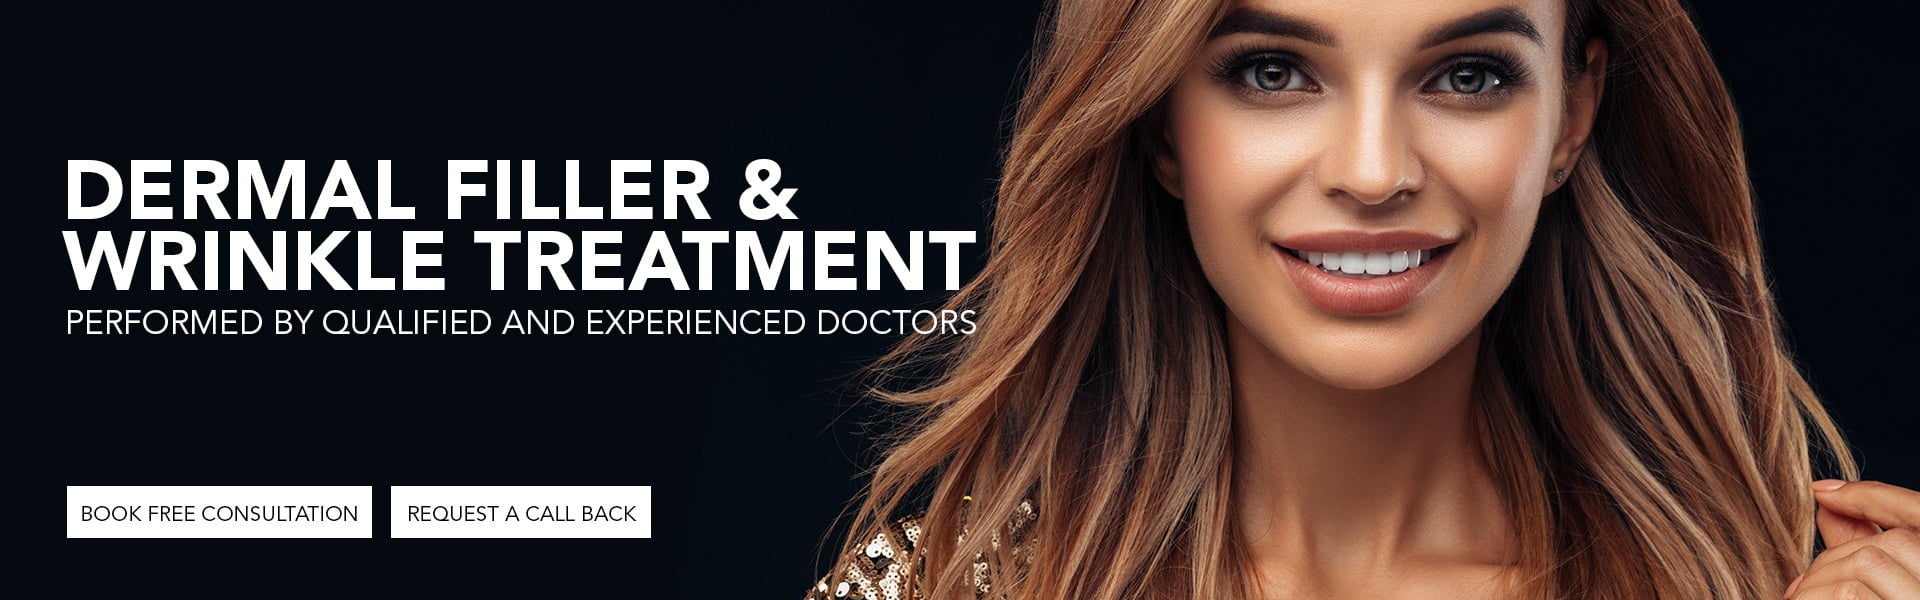 M1 Med Beauty UK - Dermal filler and wrinkle treatment performed by qualified doctors